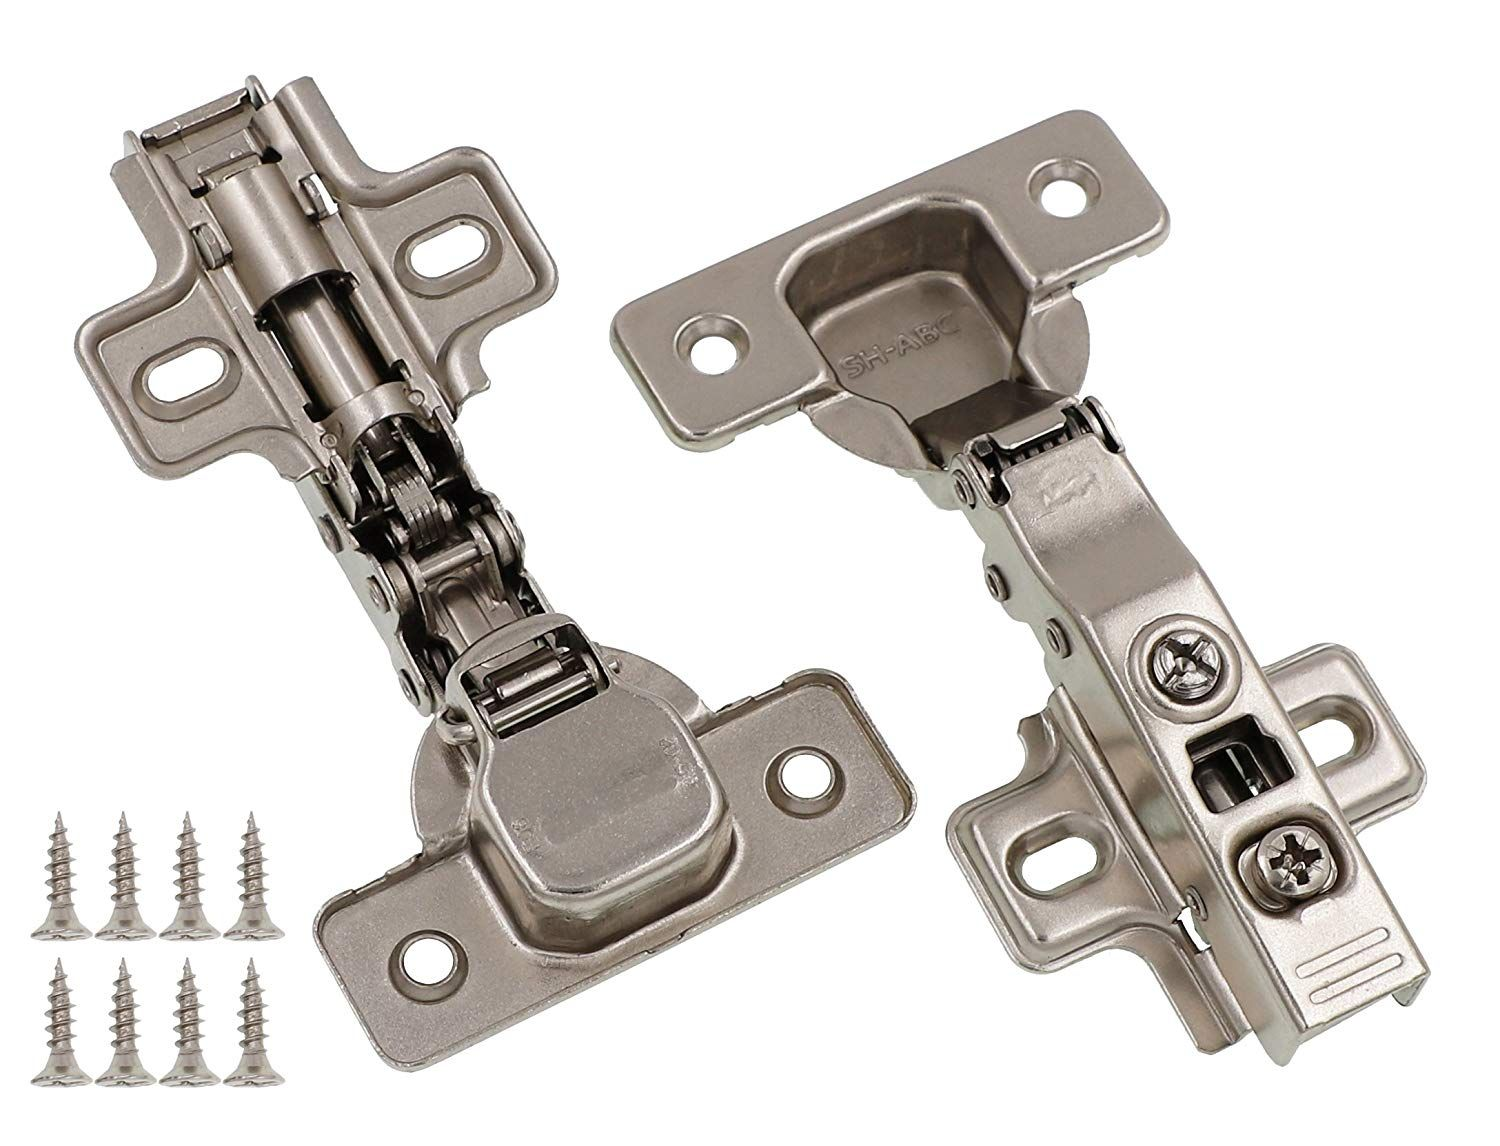 Full Overlay Concealed Frameless Cabinet Hinge Soft Closing Clip On Plate 50 Want To Kn Hinges For Cabinets Frameless Cabinets Overlay Cabinet Hinges